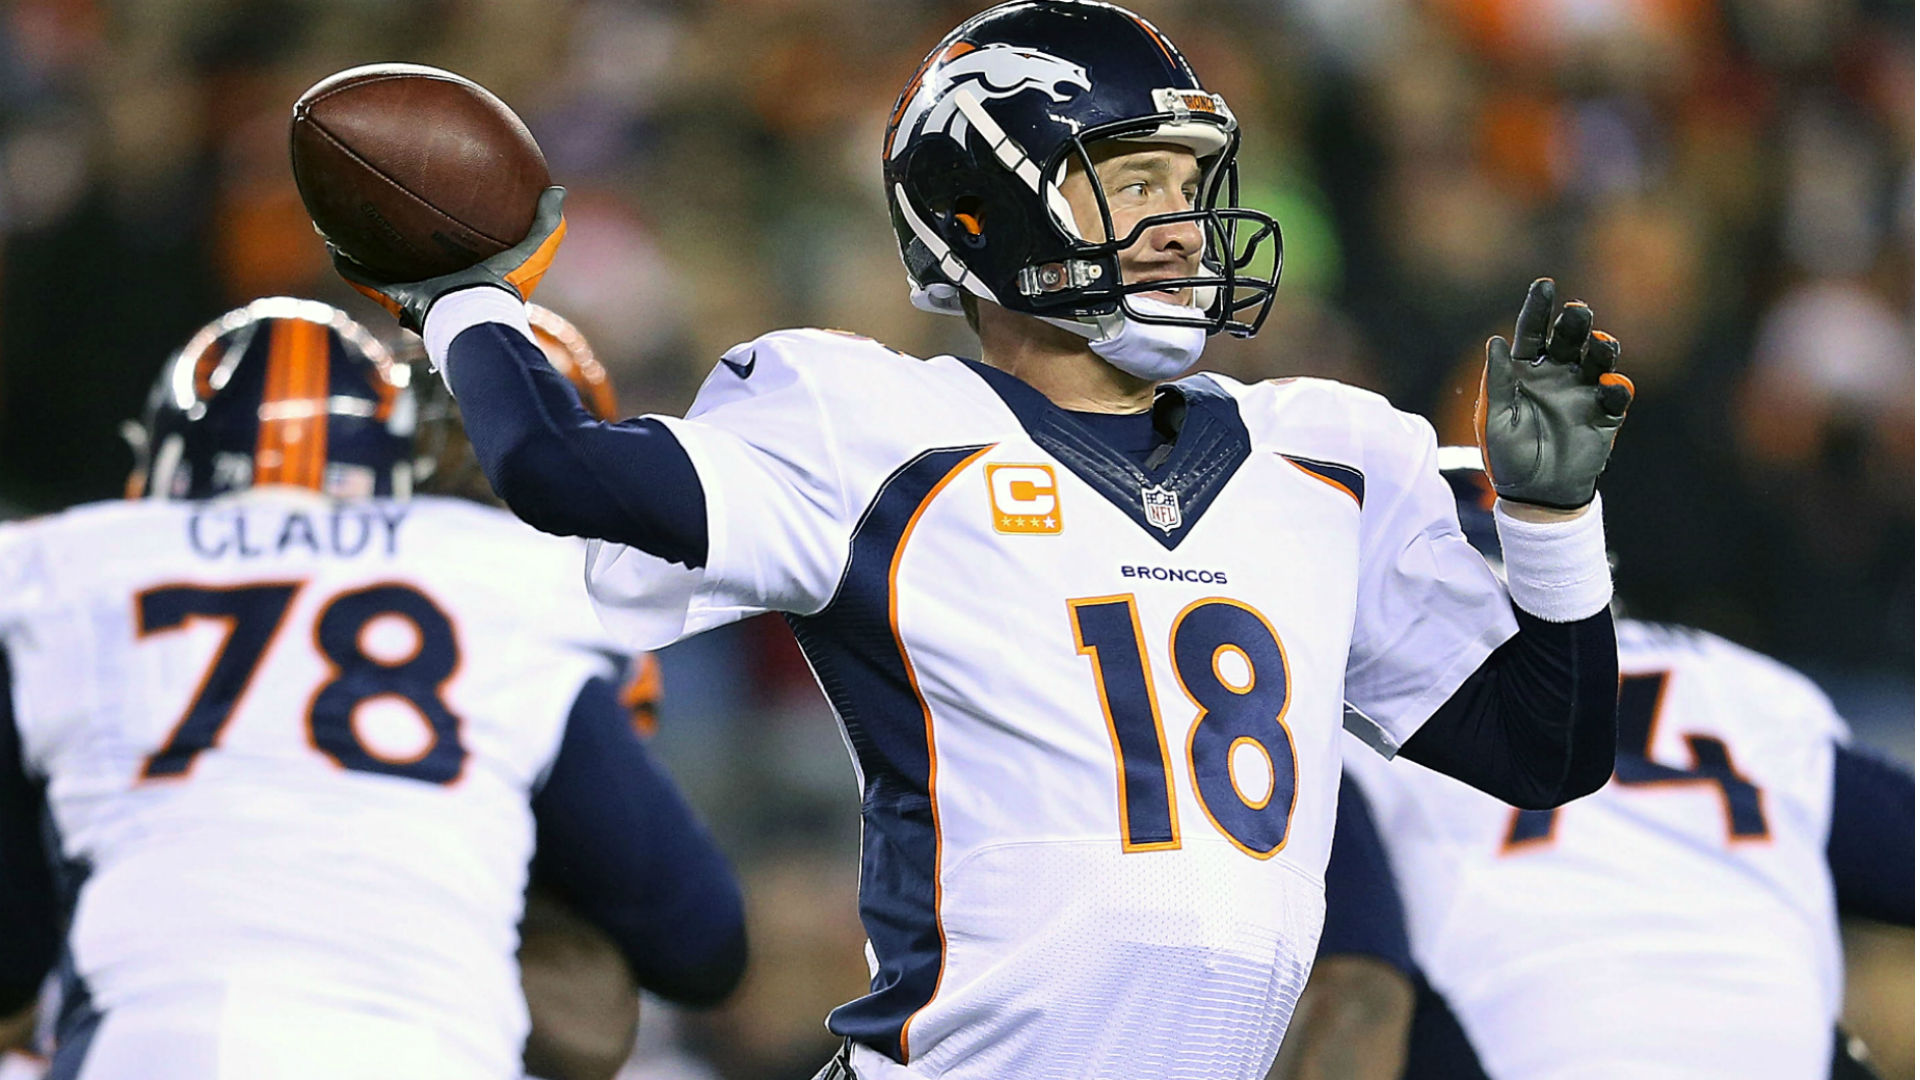 Raiders vs. Broncos betting lines and pick – Denver aims for first-round bye